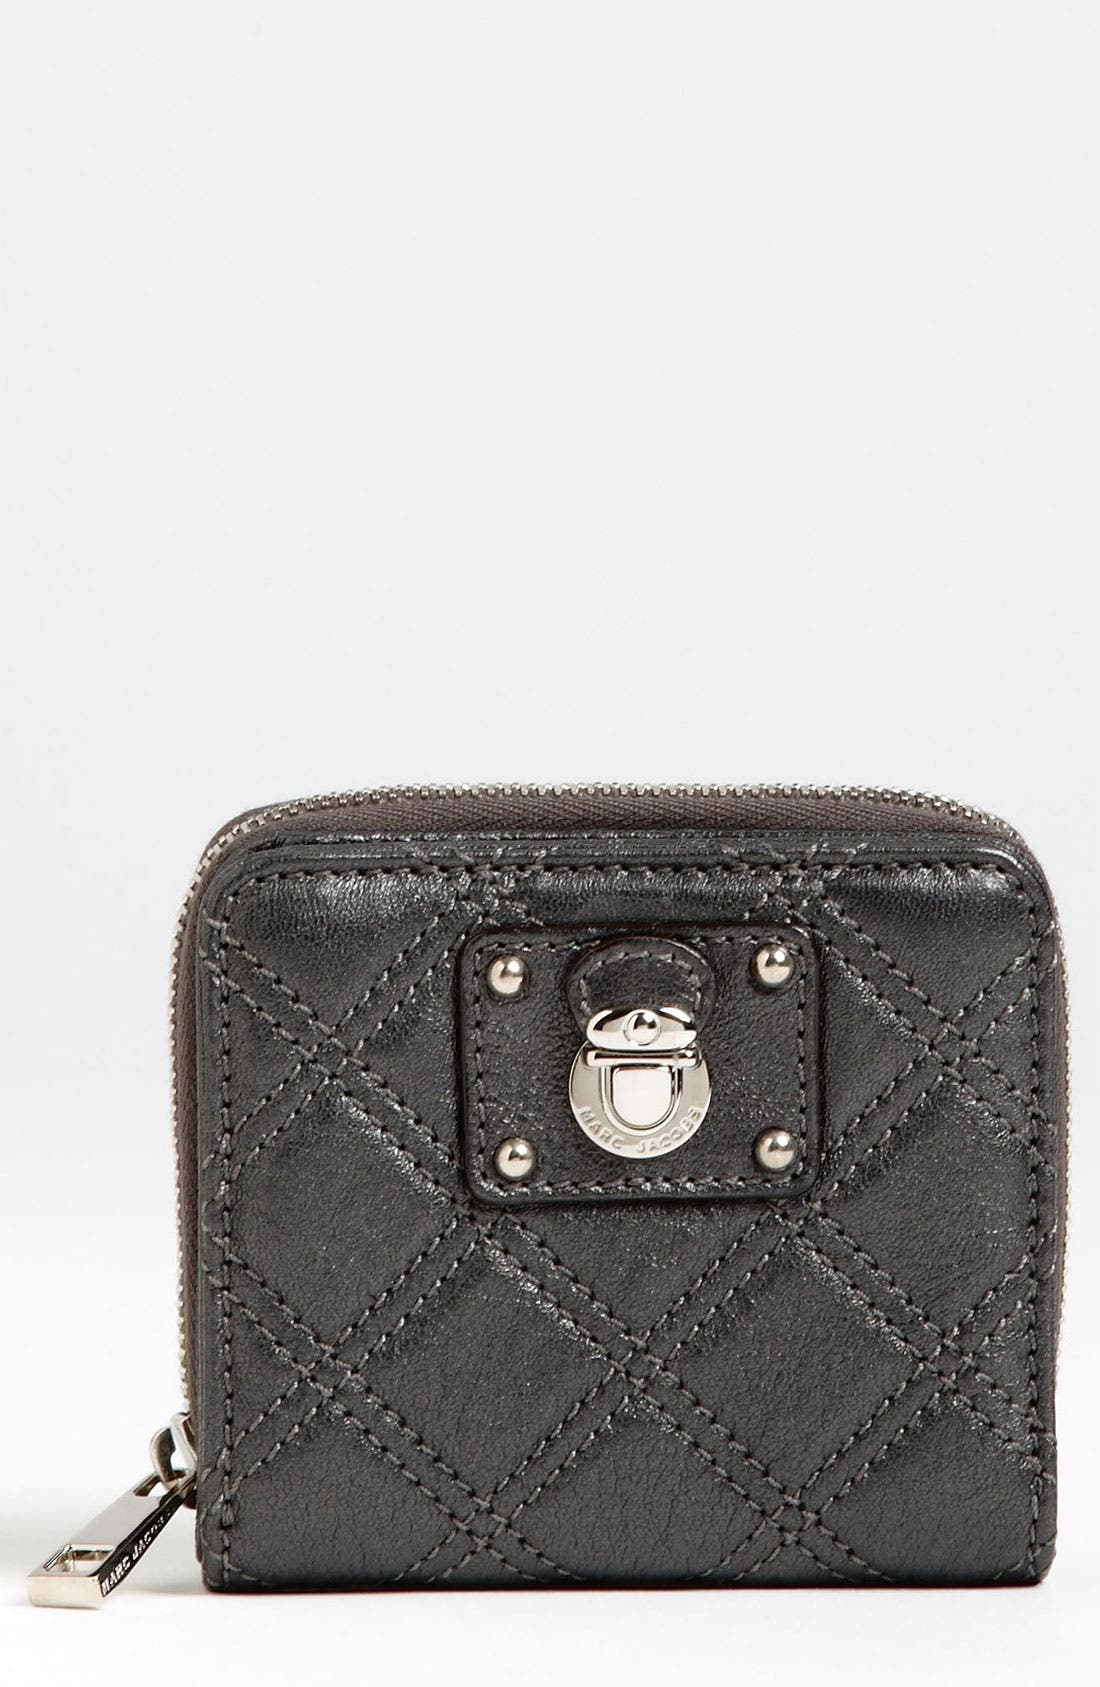 Main Image - MARC JACOBS 'Anabela' Leather French Wallet